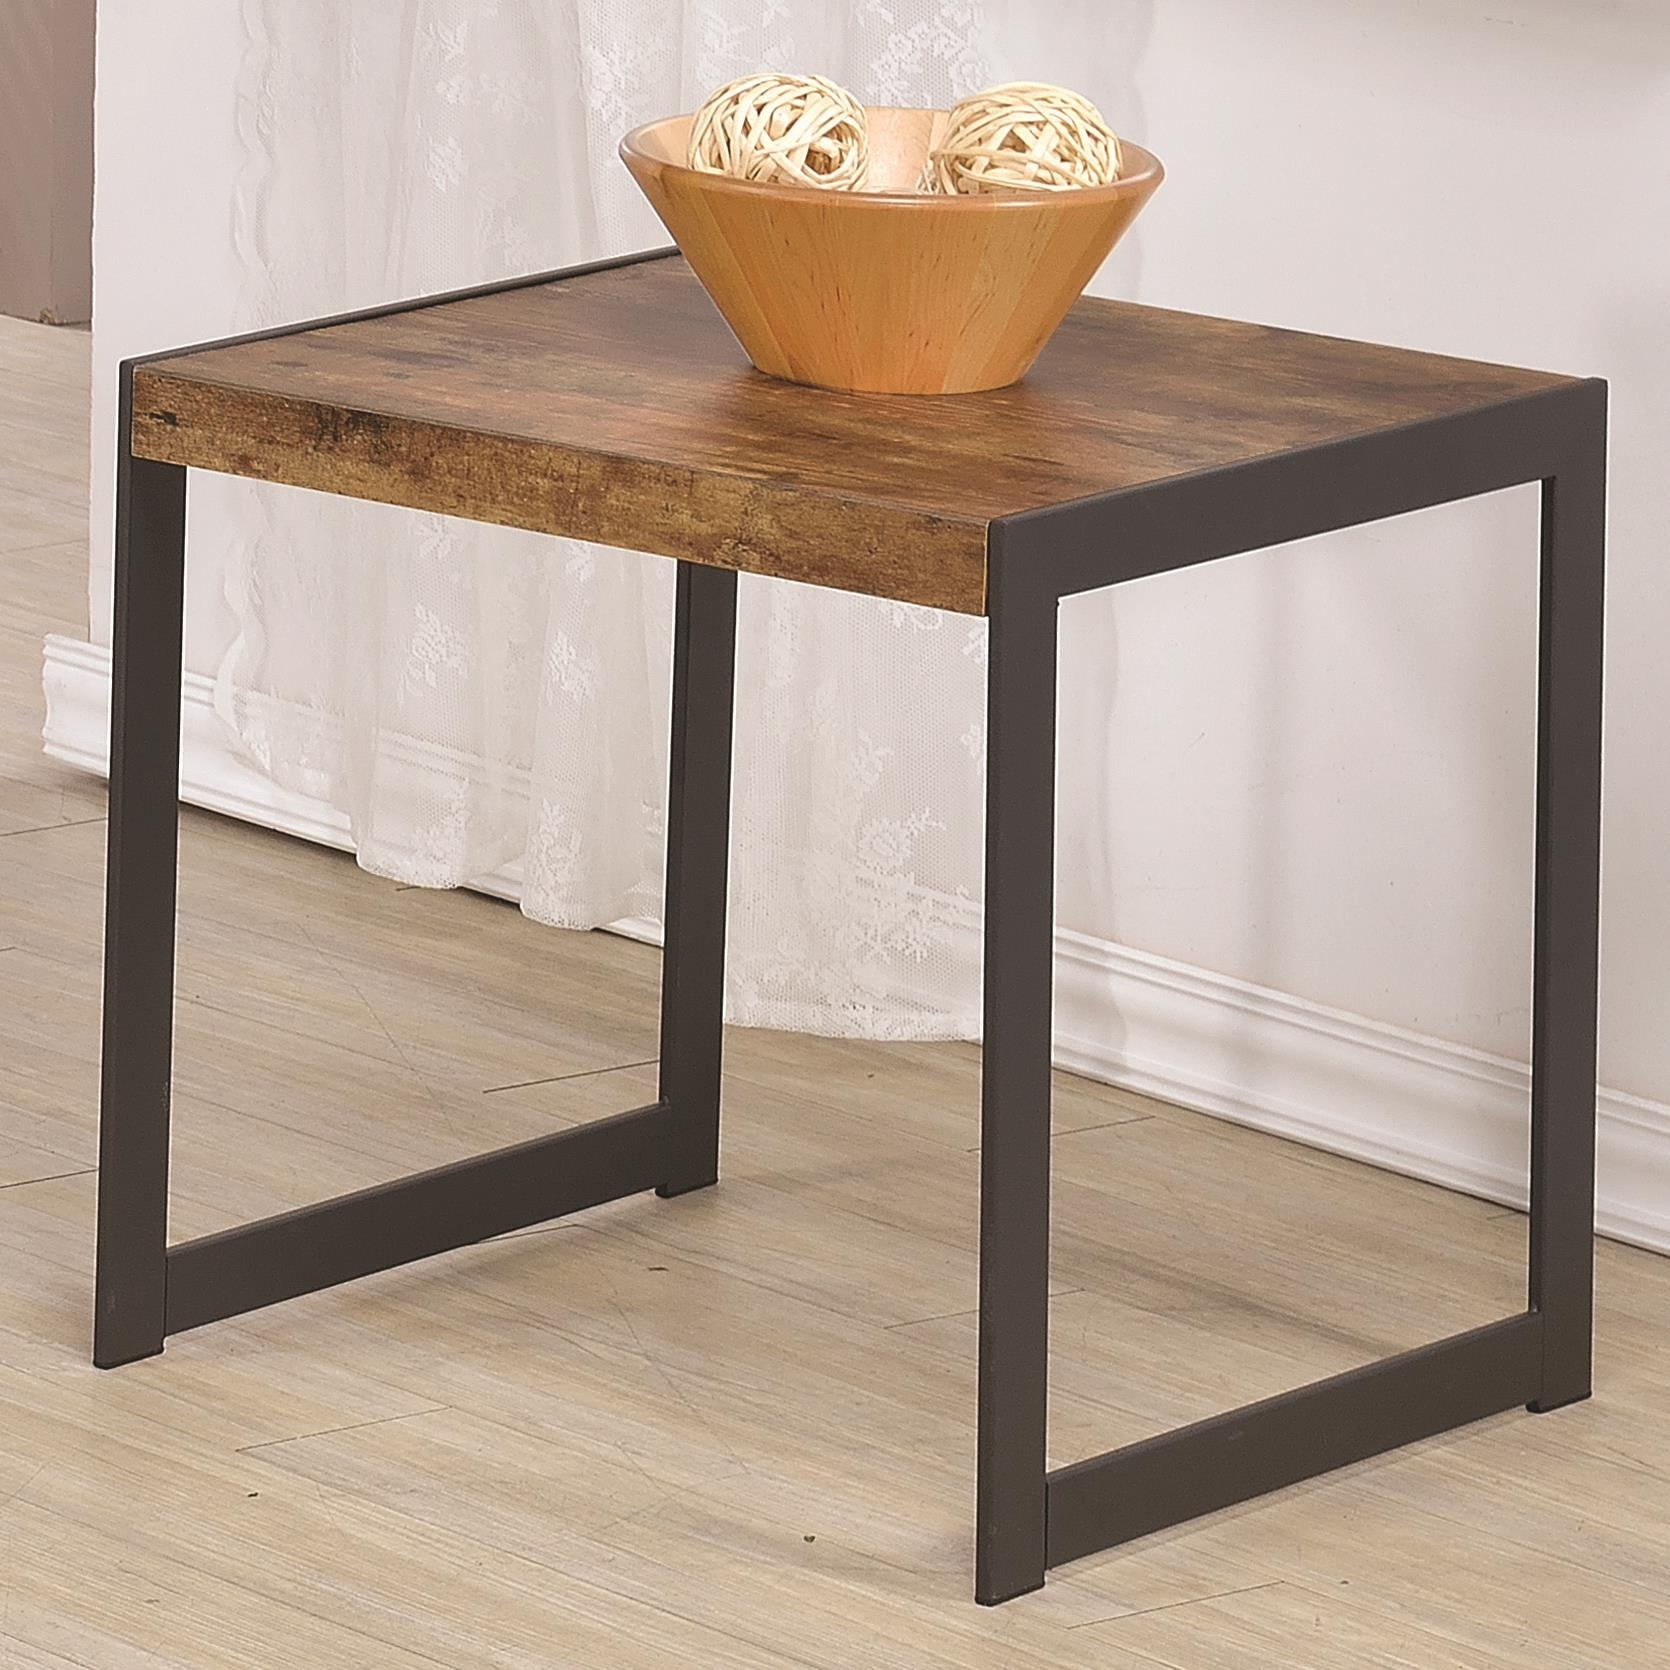 accent table groups product categories quality furniture products coaster color rustic end metal base gold wire side skinny white nightstand height solid wood threshold sofa and